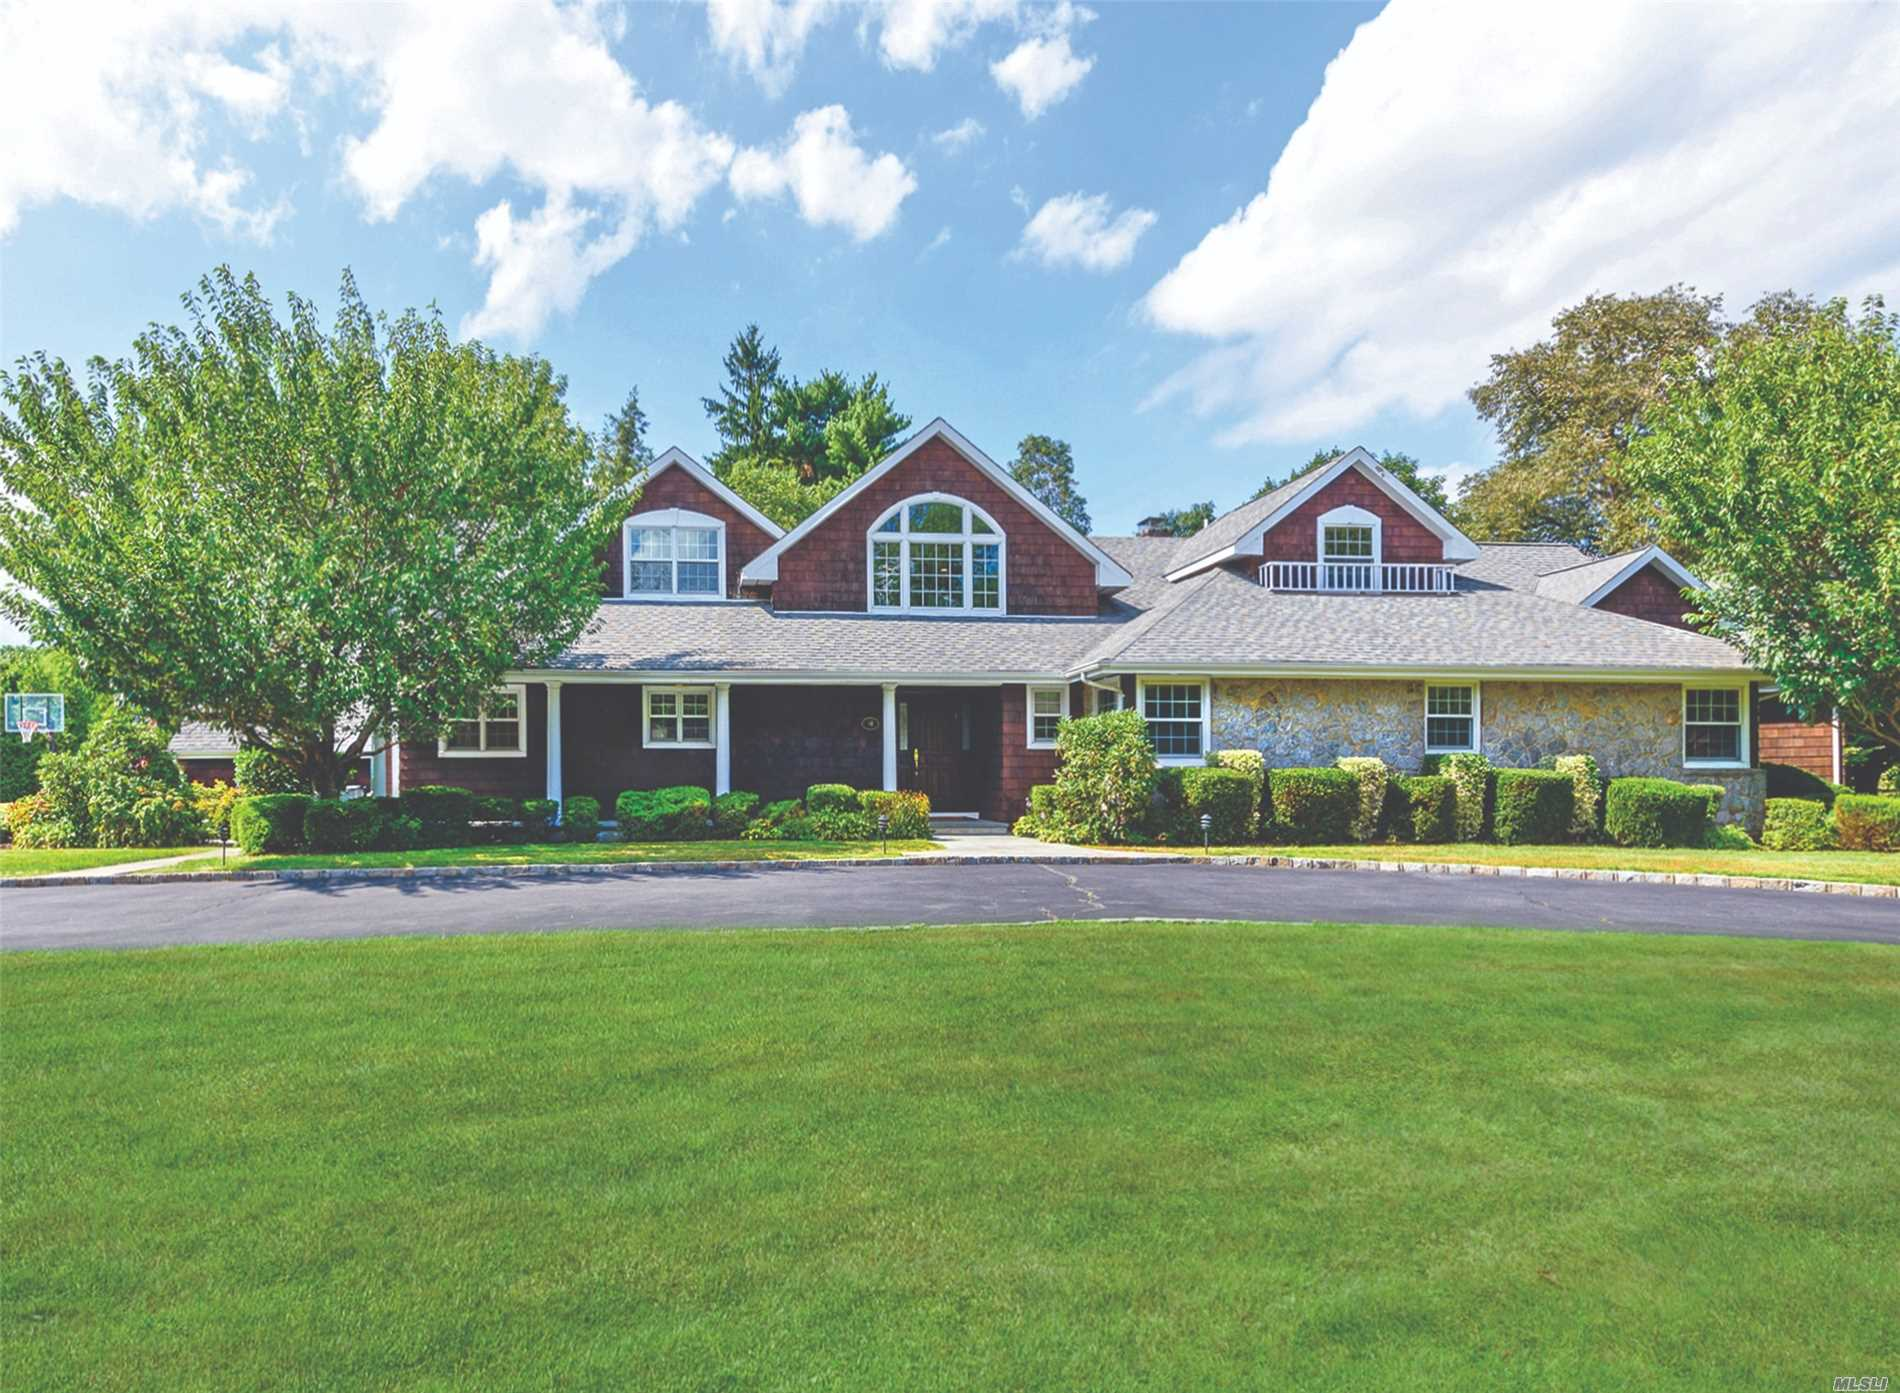 81 Woodhollow Rd East Hills, NY 11577